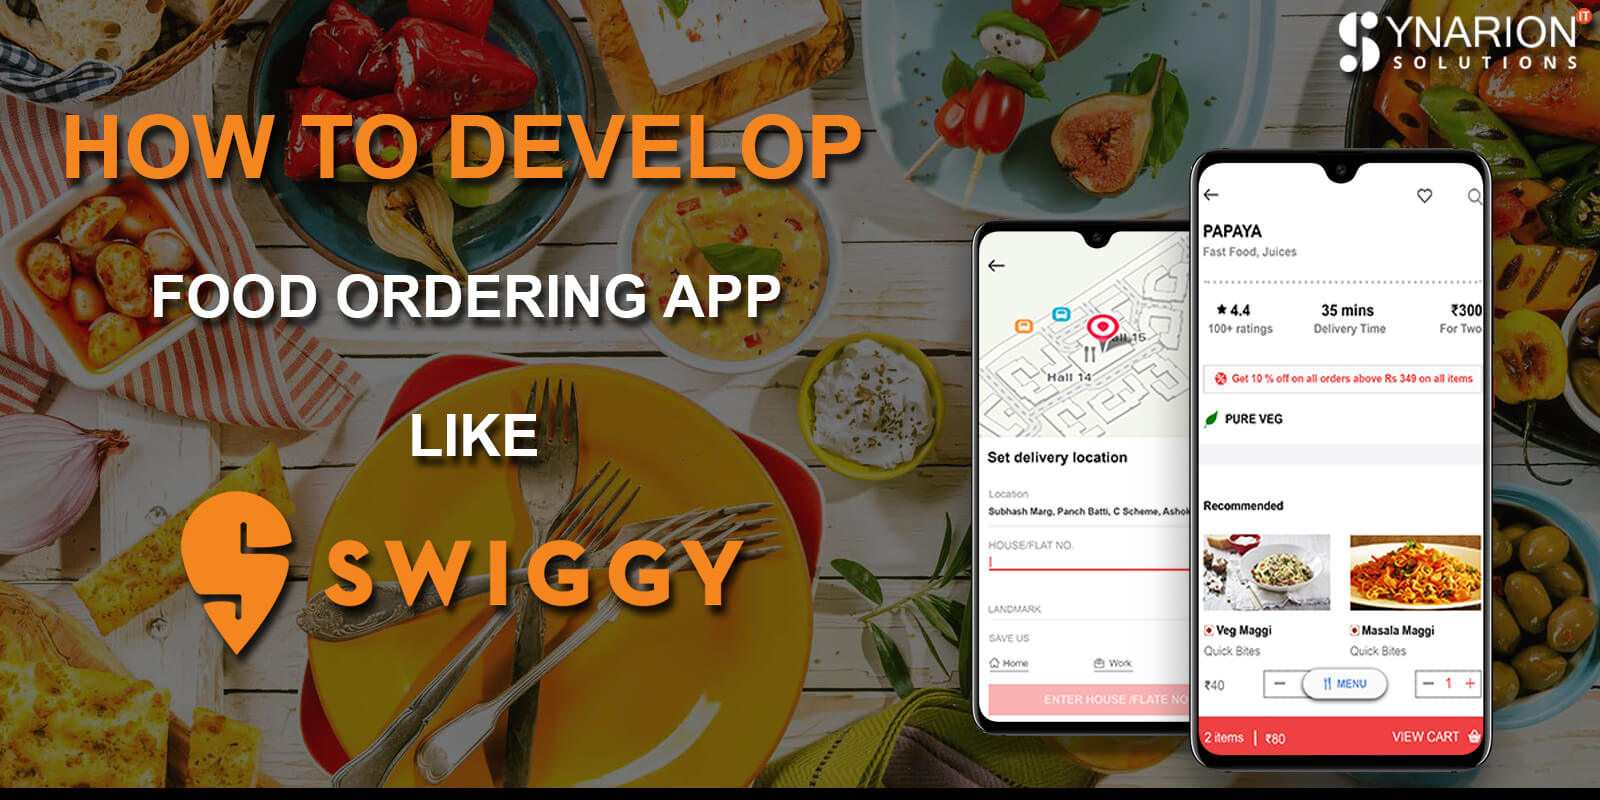 How to develop Food ordering App like Swiggy!